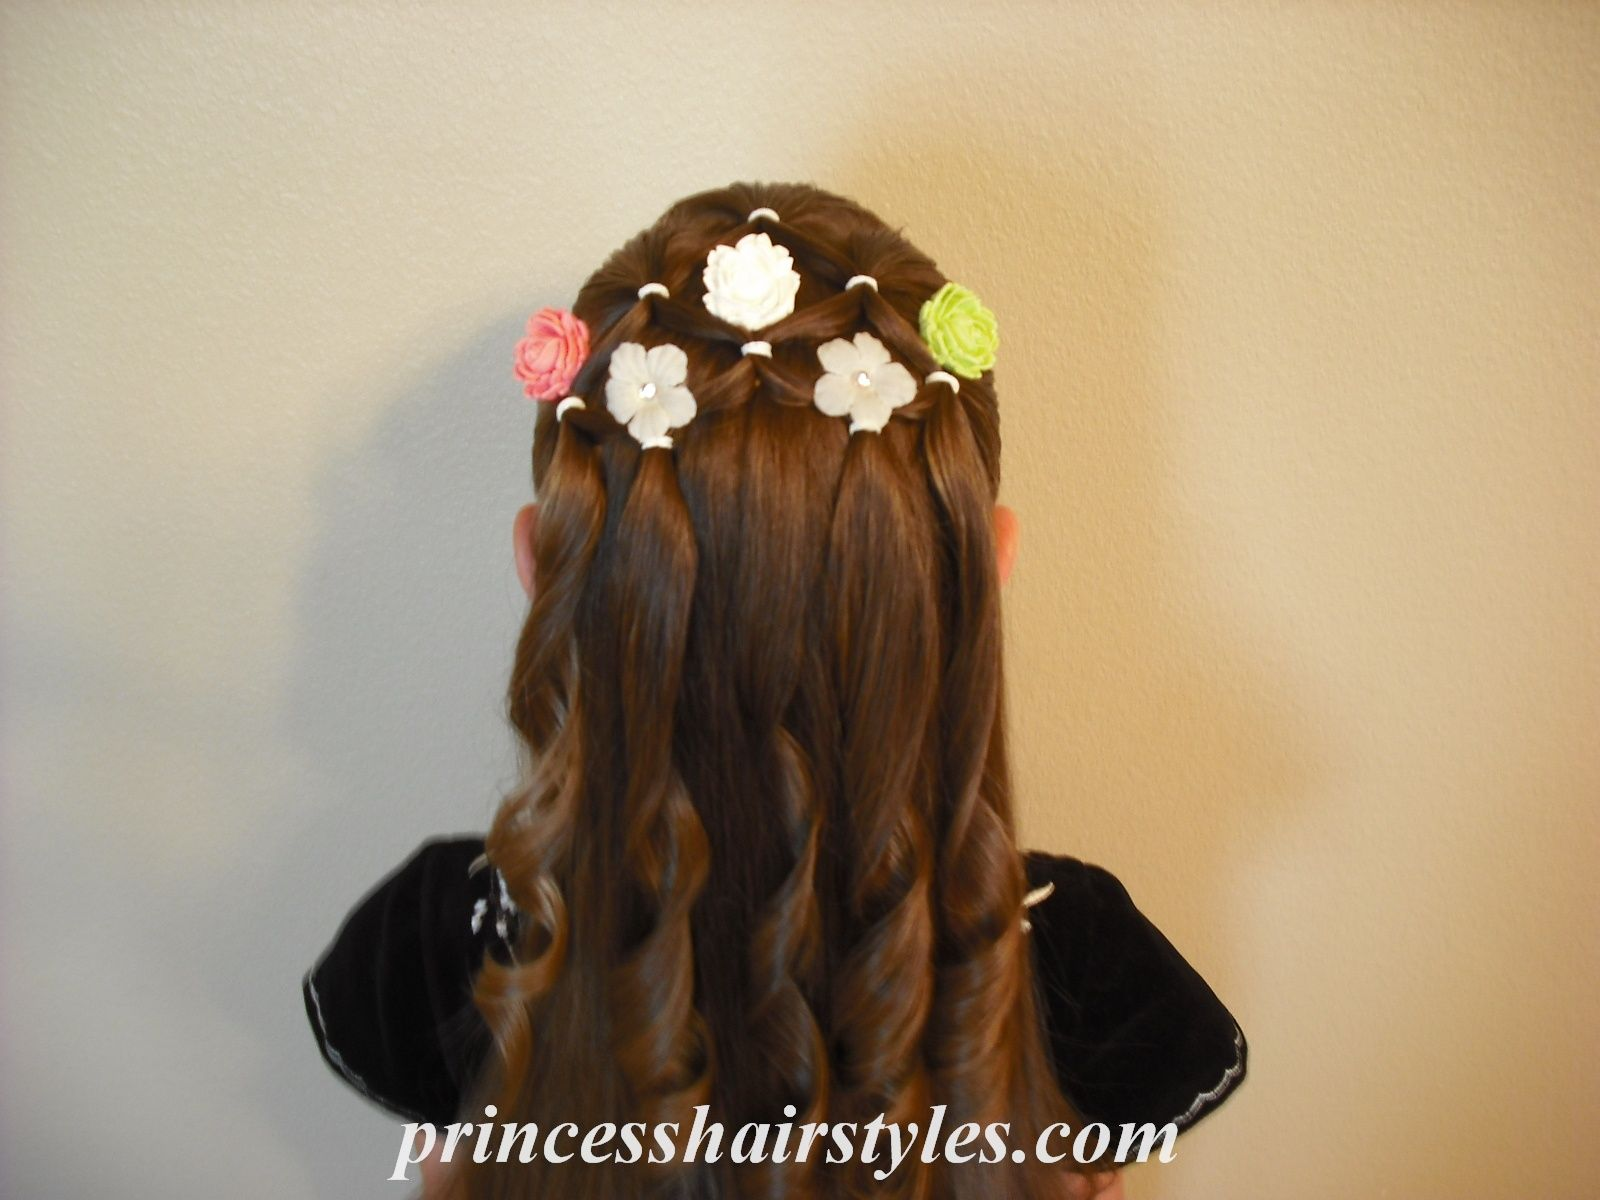 Flower Girl Hairstyles Pinterest: Or This One. The General Idea Is Ringlets, Flowers, And